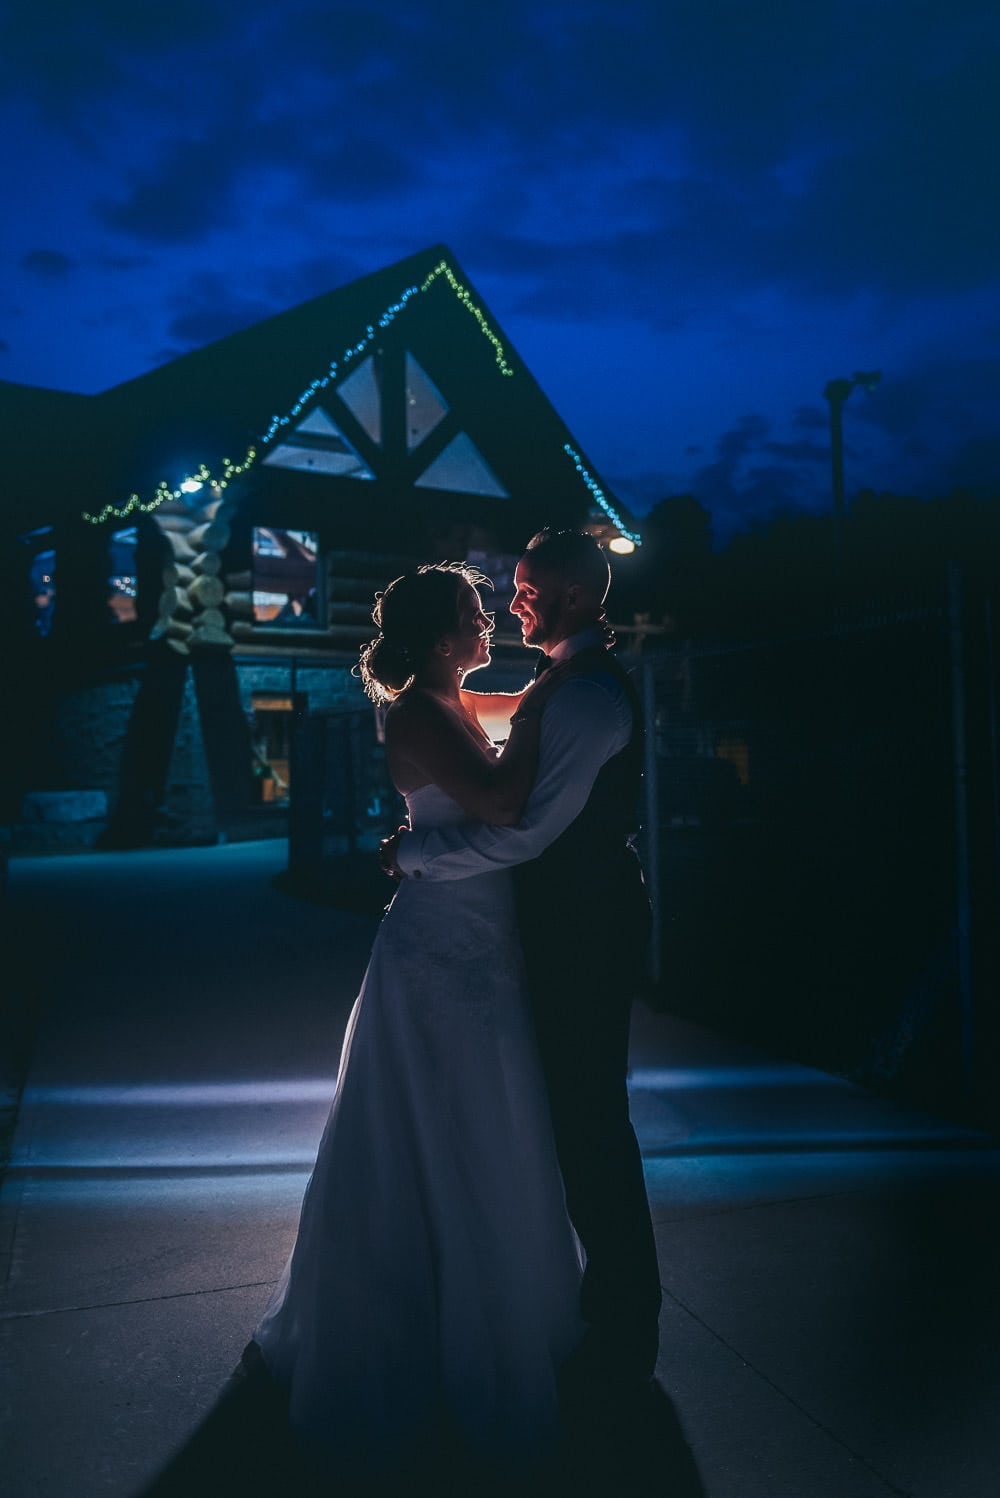 Night time wedding photo at Pine Valley Chalet